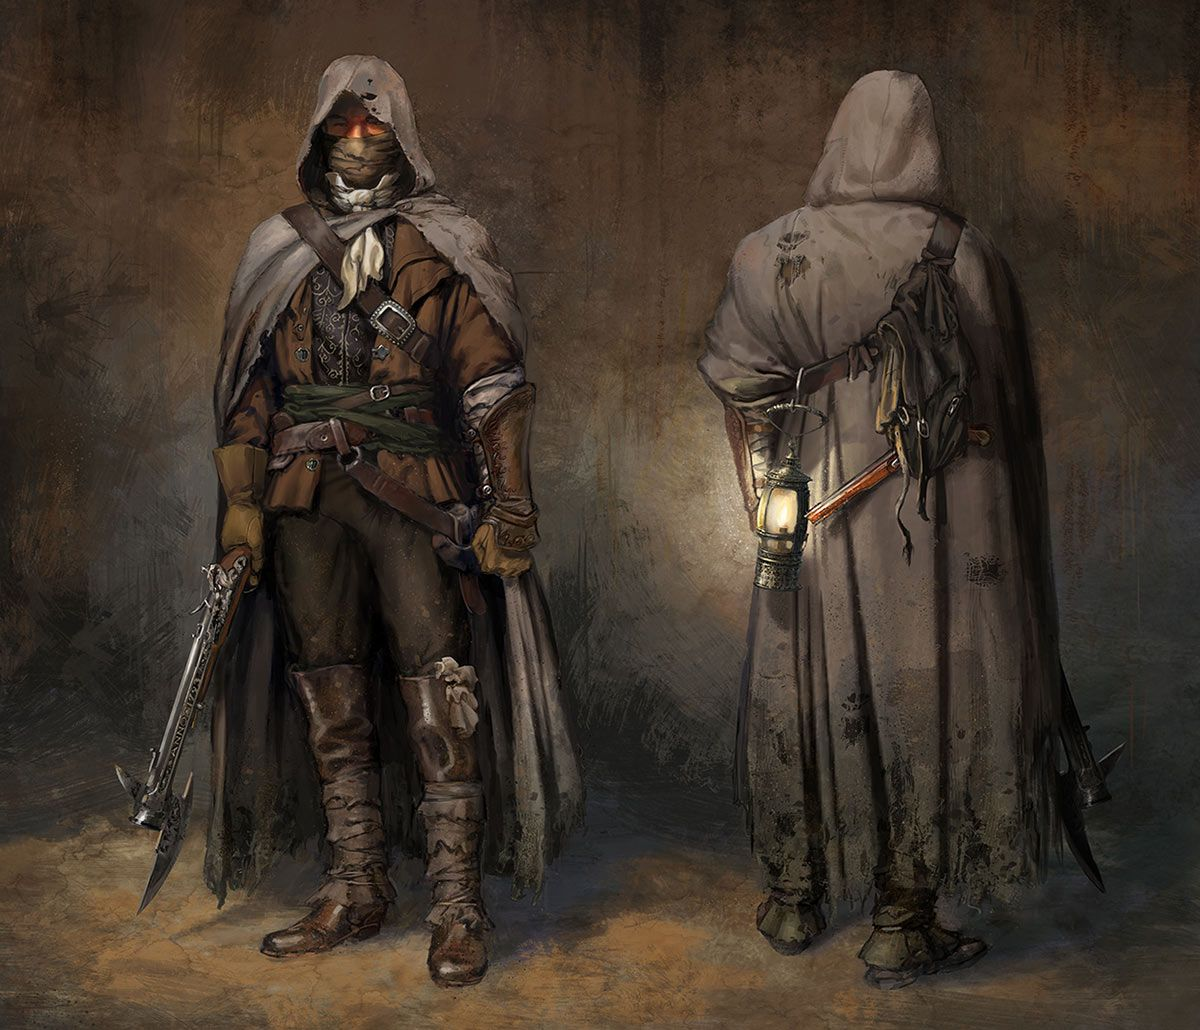 Arno Concept Characters Art Assassin S Creed Unity Assassins Creed Art Assassins Creed Artwork Character Art